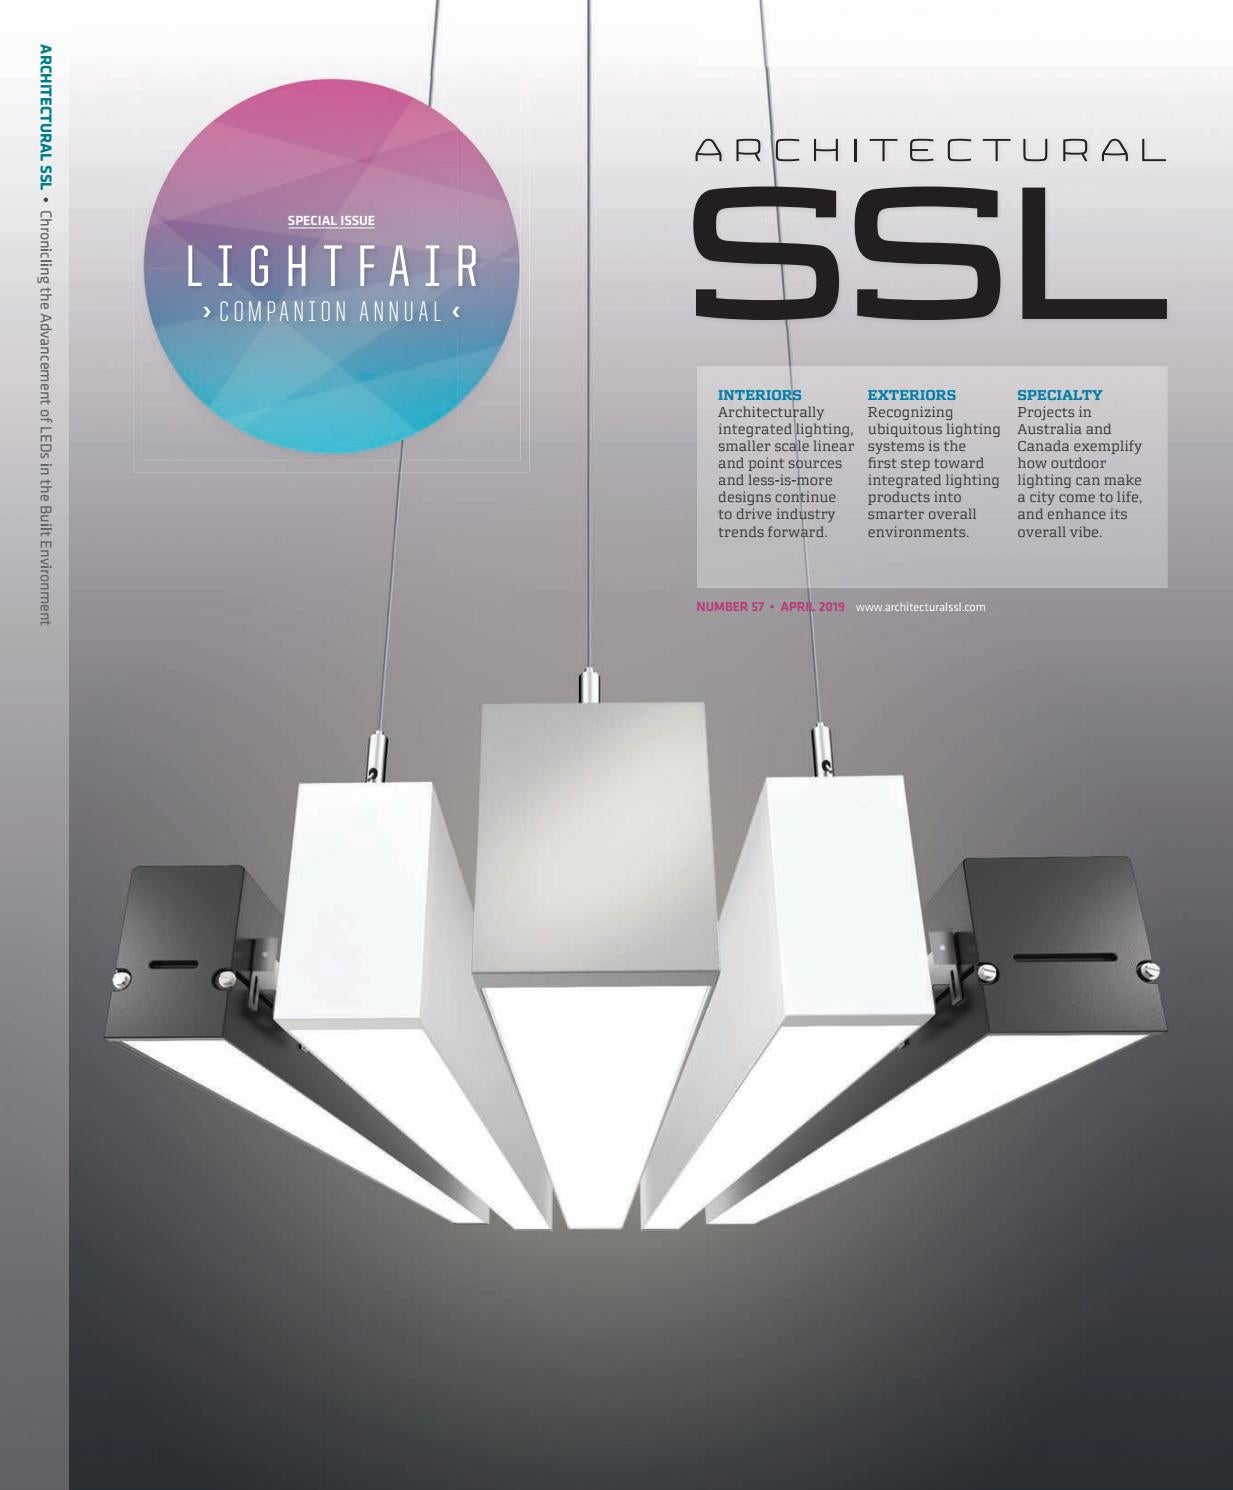 Architectural Ssl April 2019 By Construction Business Media Issuu